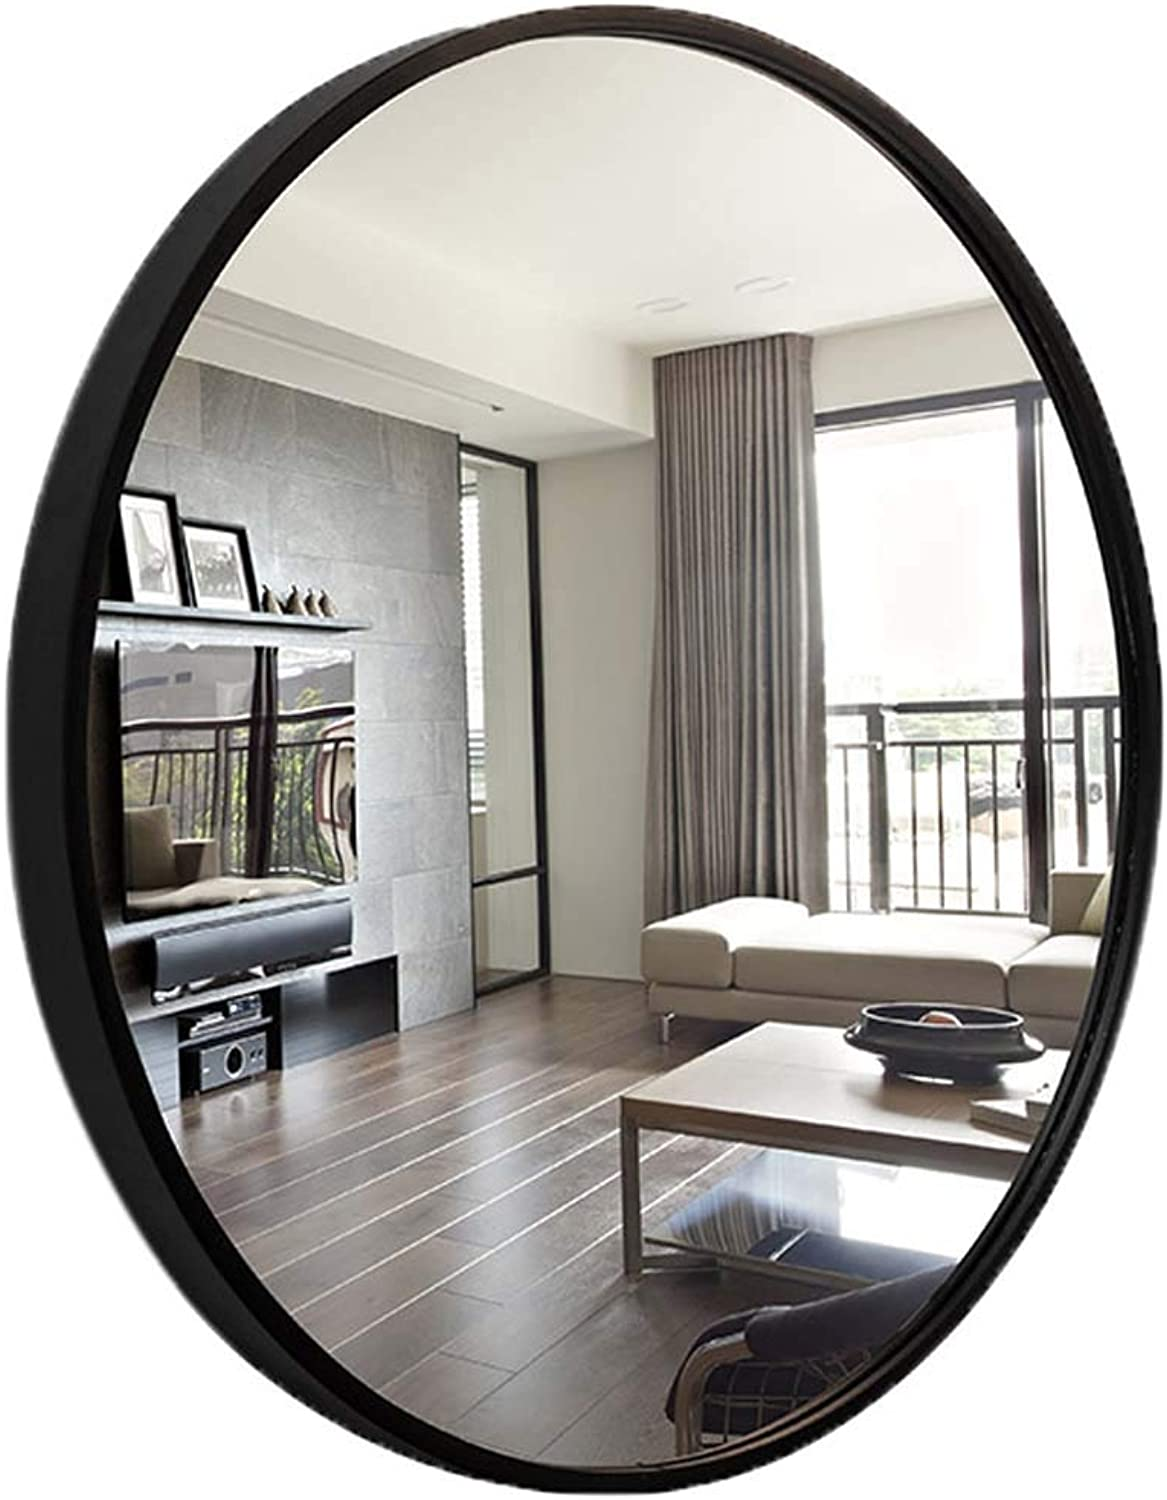 Wall-Mounted Round Mirrors (19.7-31.5Inch) Modern Concise Decorative Hangs Mirror with Black Solid Wood Frame Makeup Shaving Vanity Mirror for Bathroom Bedroom Living Room Hallway